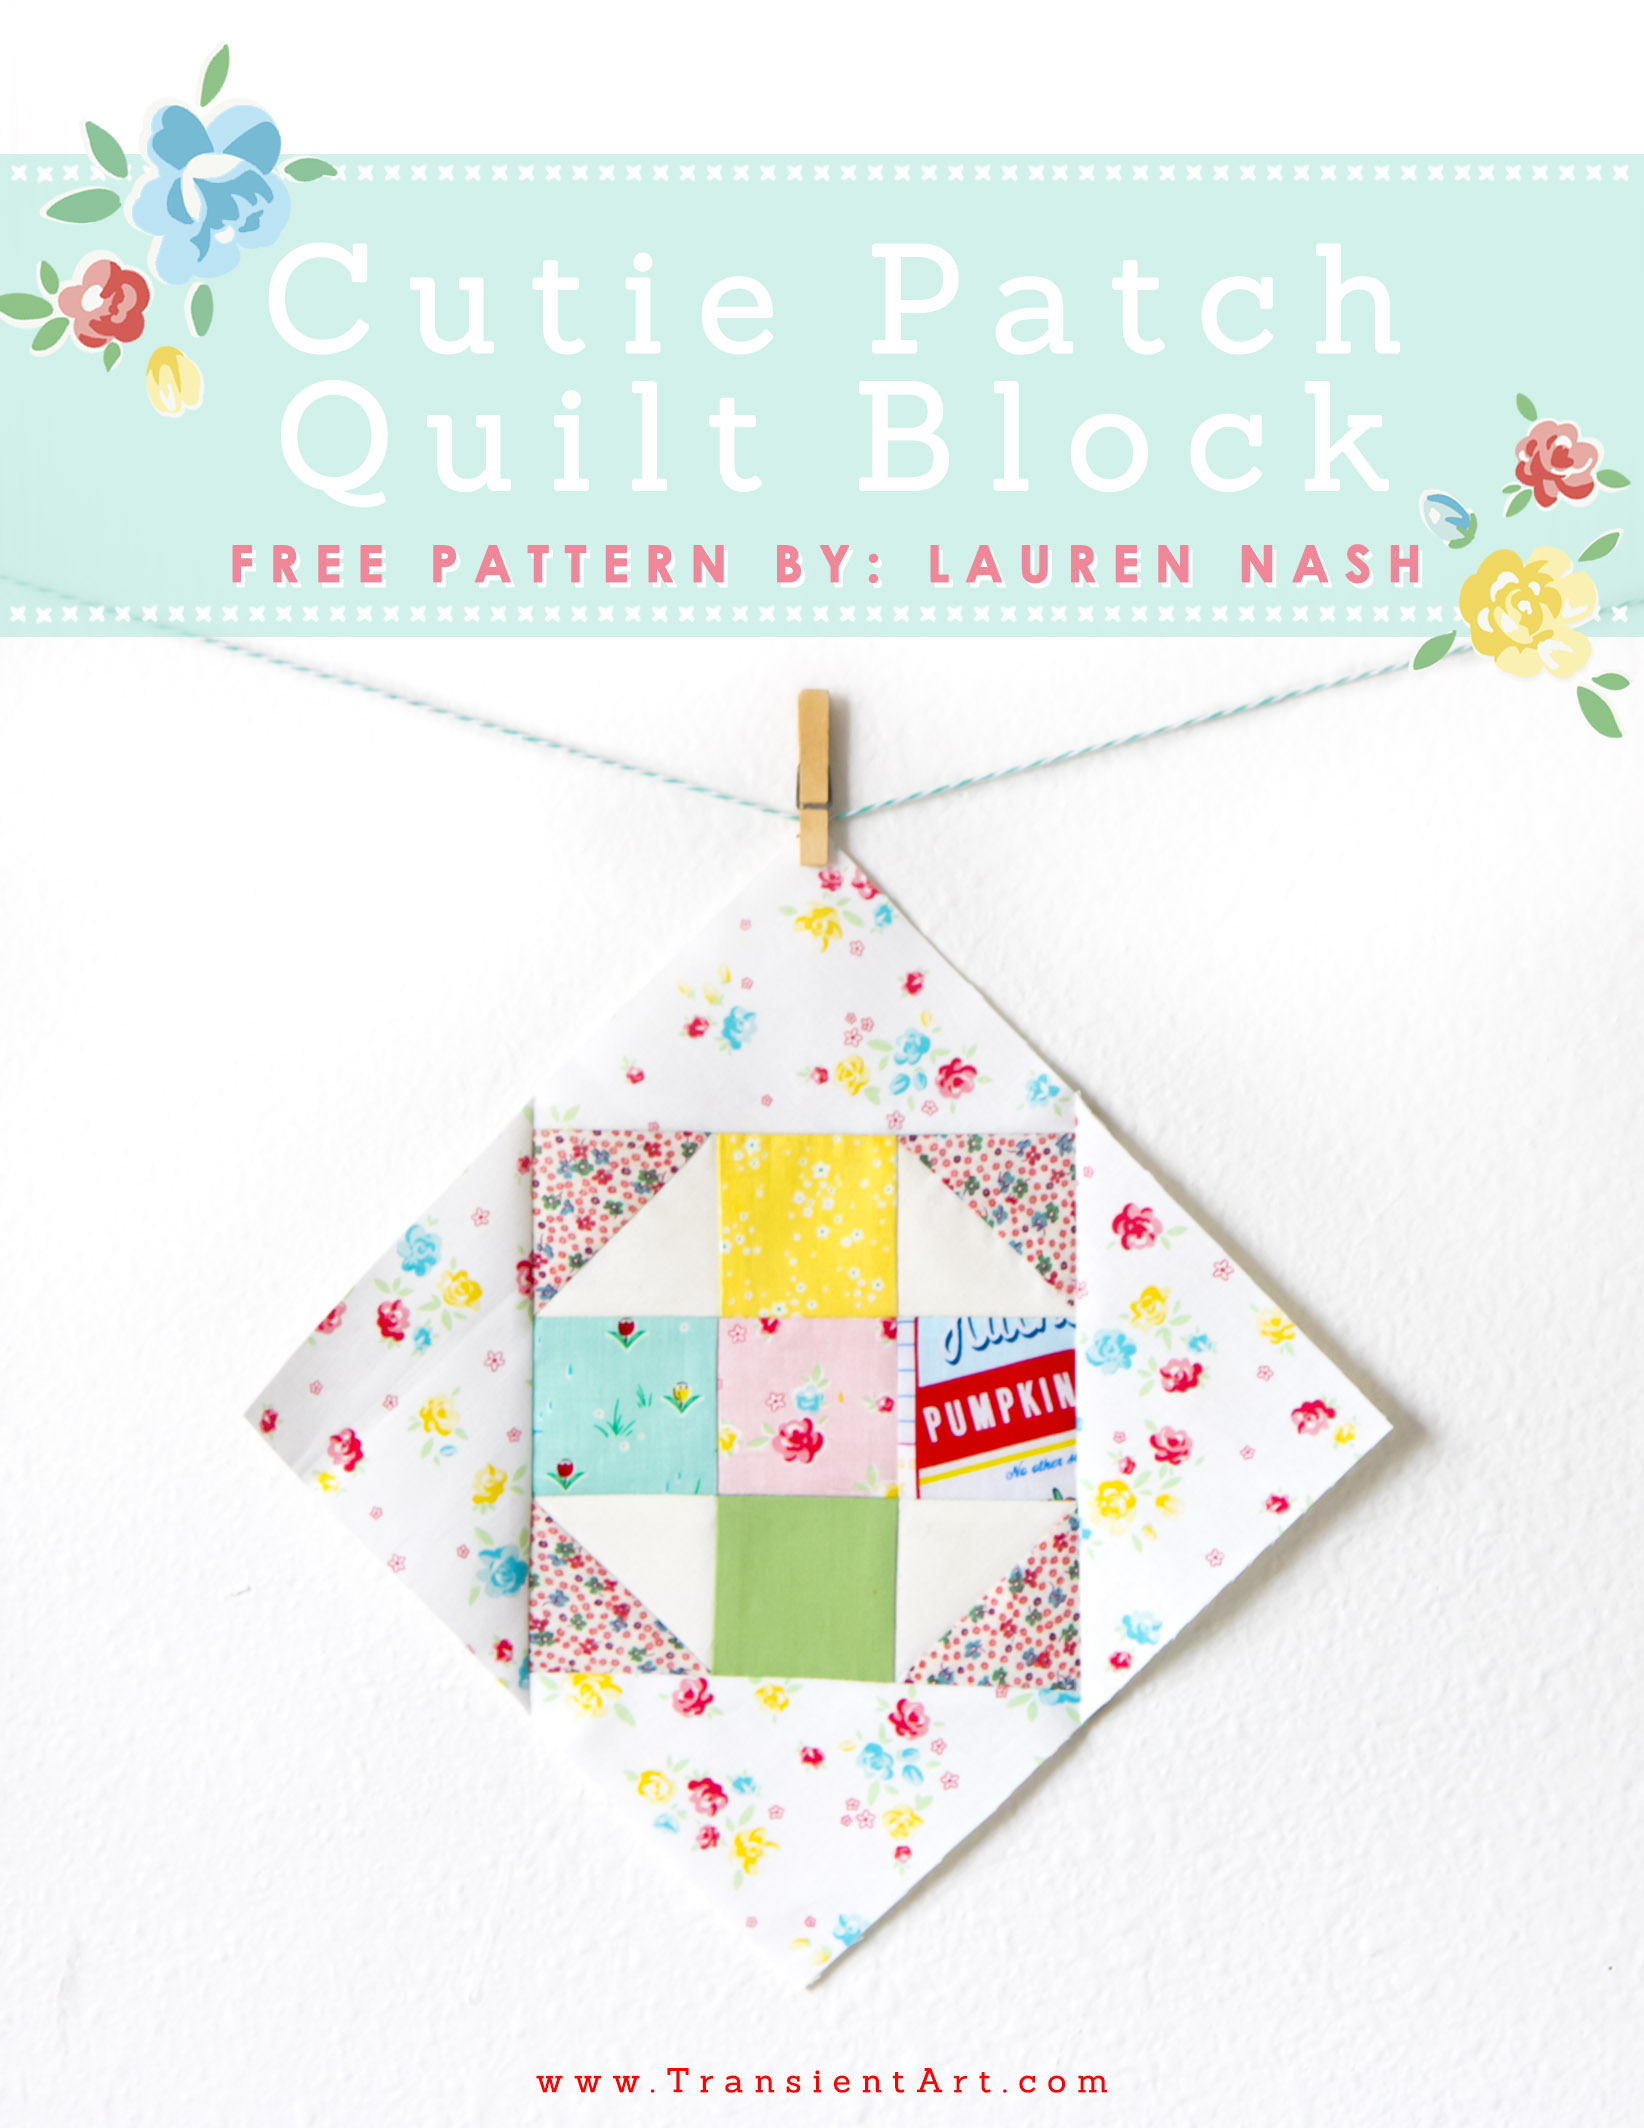 Cutite-Patch-Free-Quilt-Block-pattern-cover.jpg